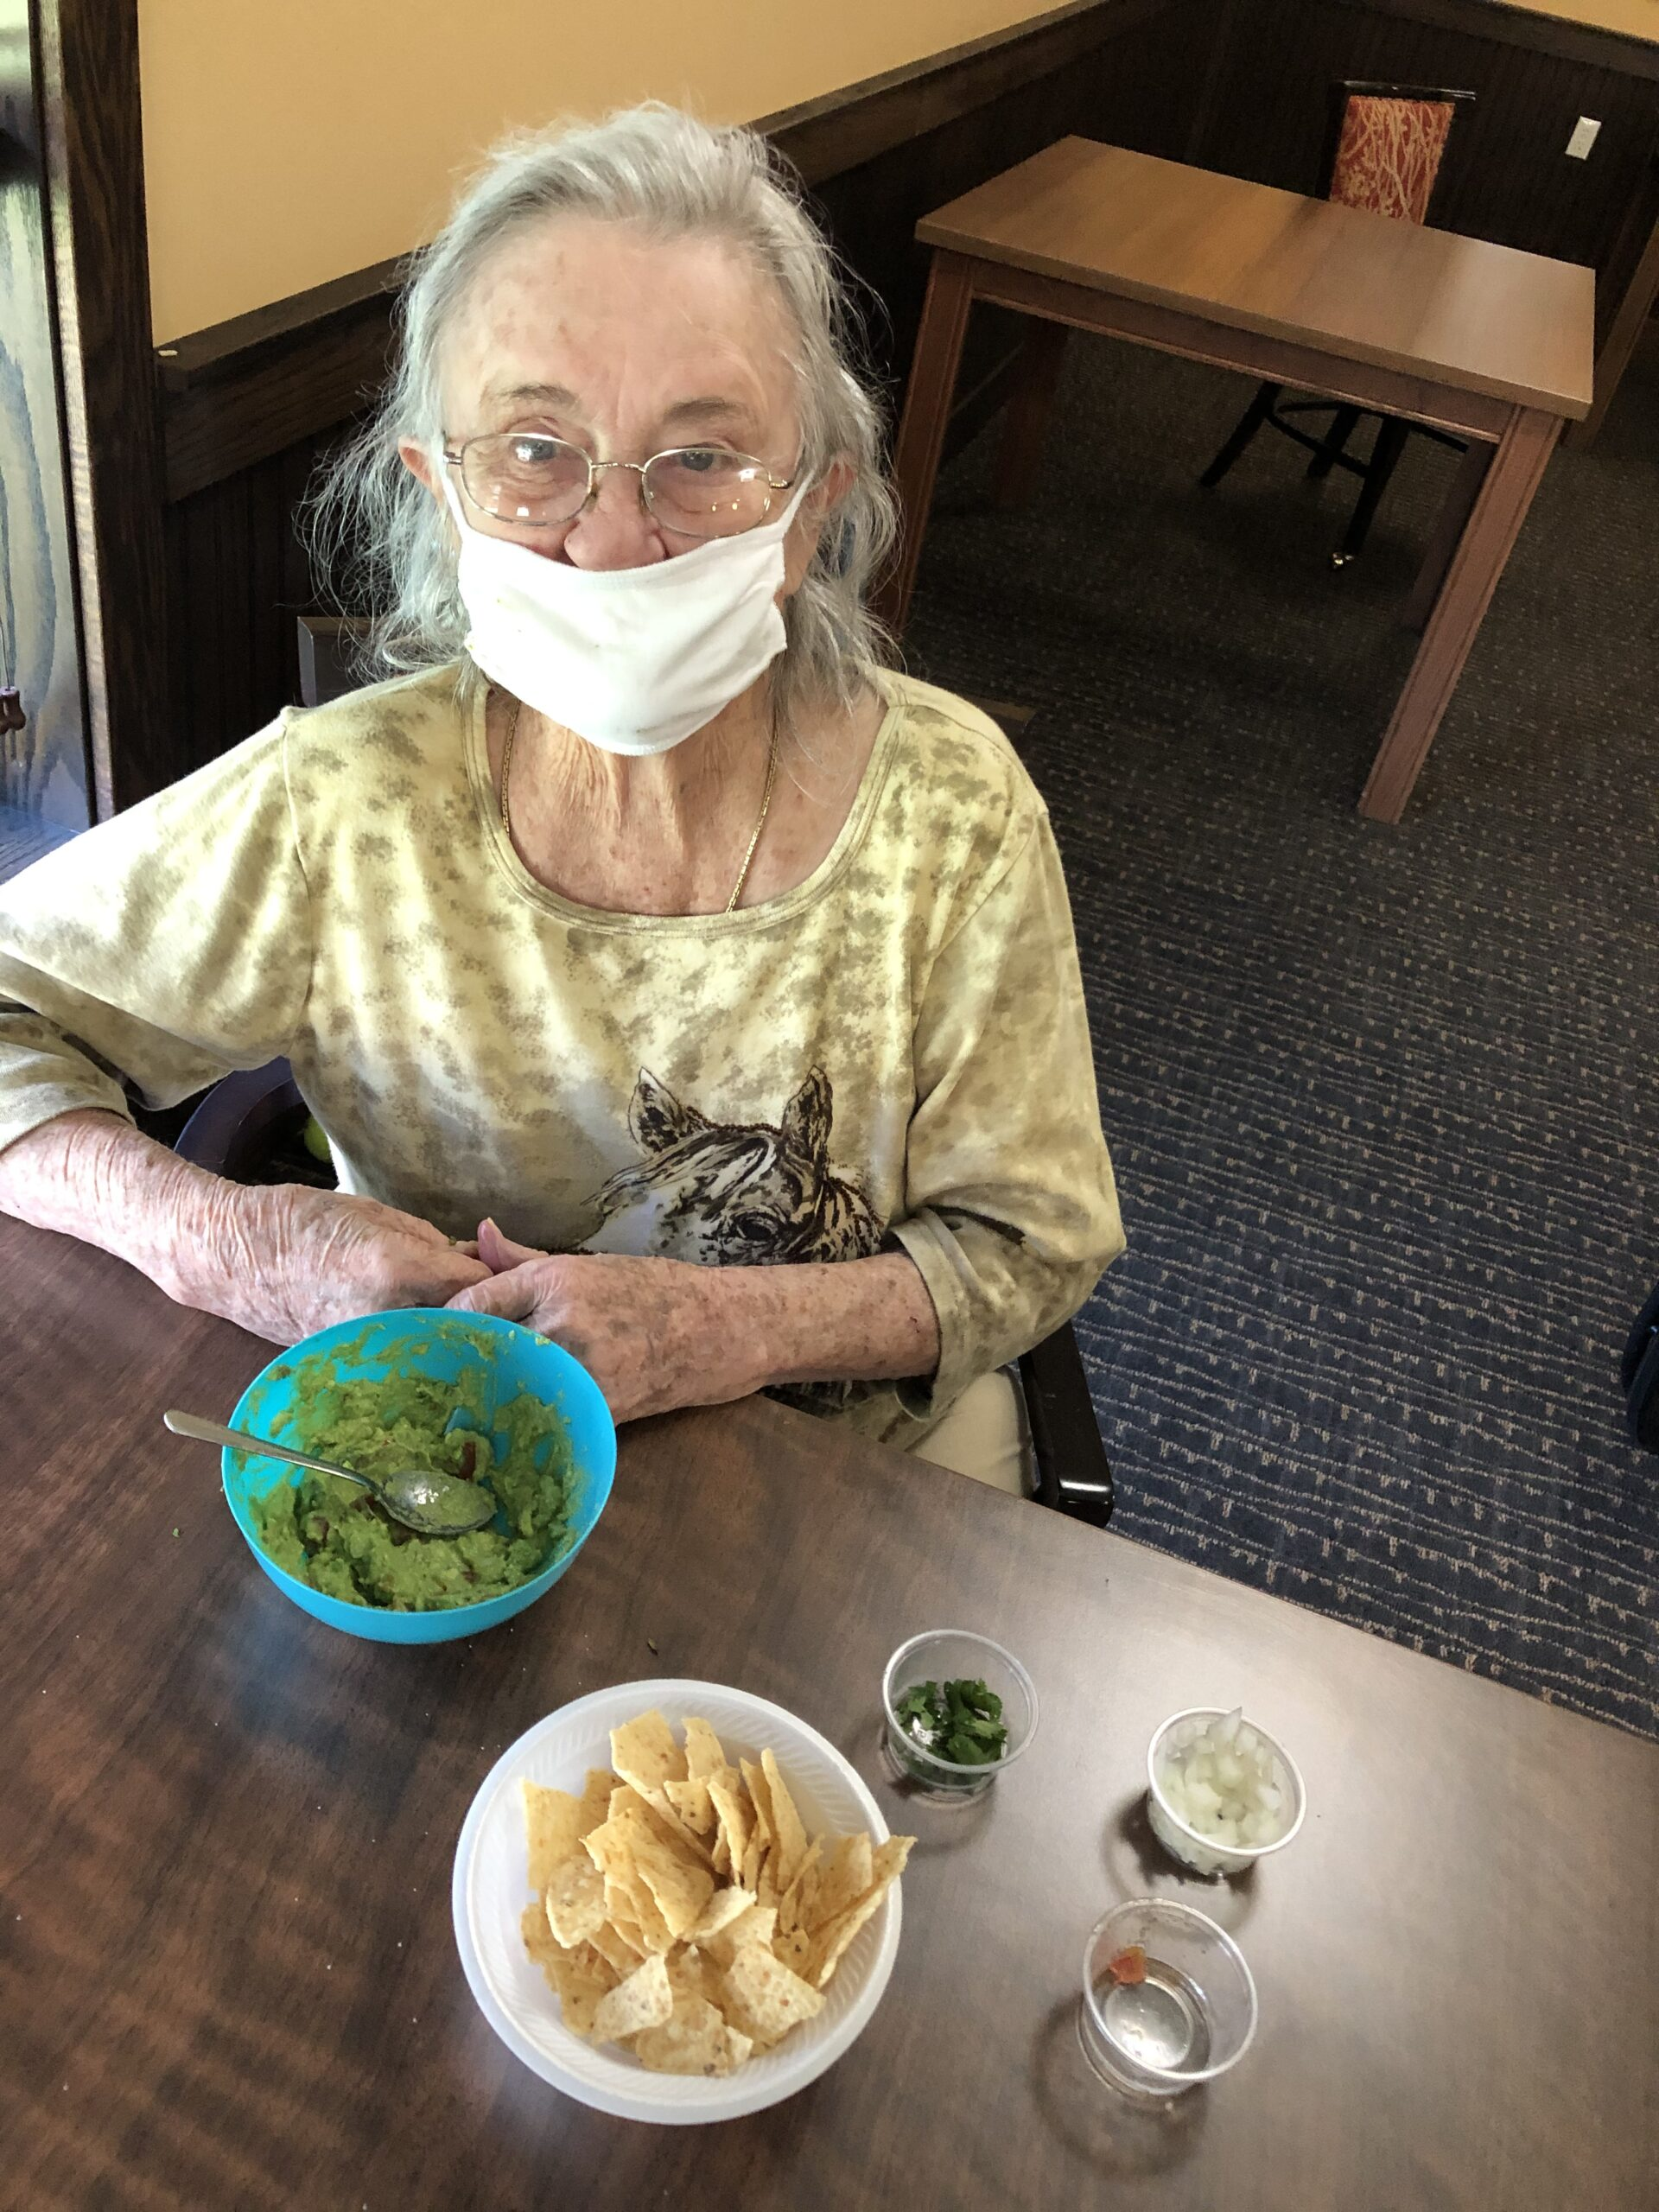 For cooking class this week we made Guacamole! Mary-Lee was very excited to dig into her creation.